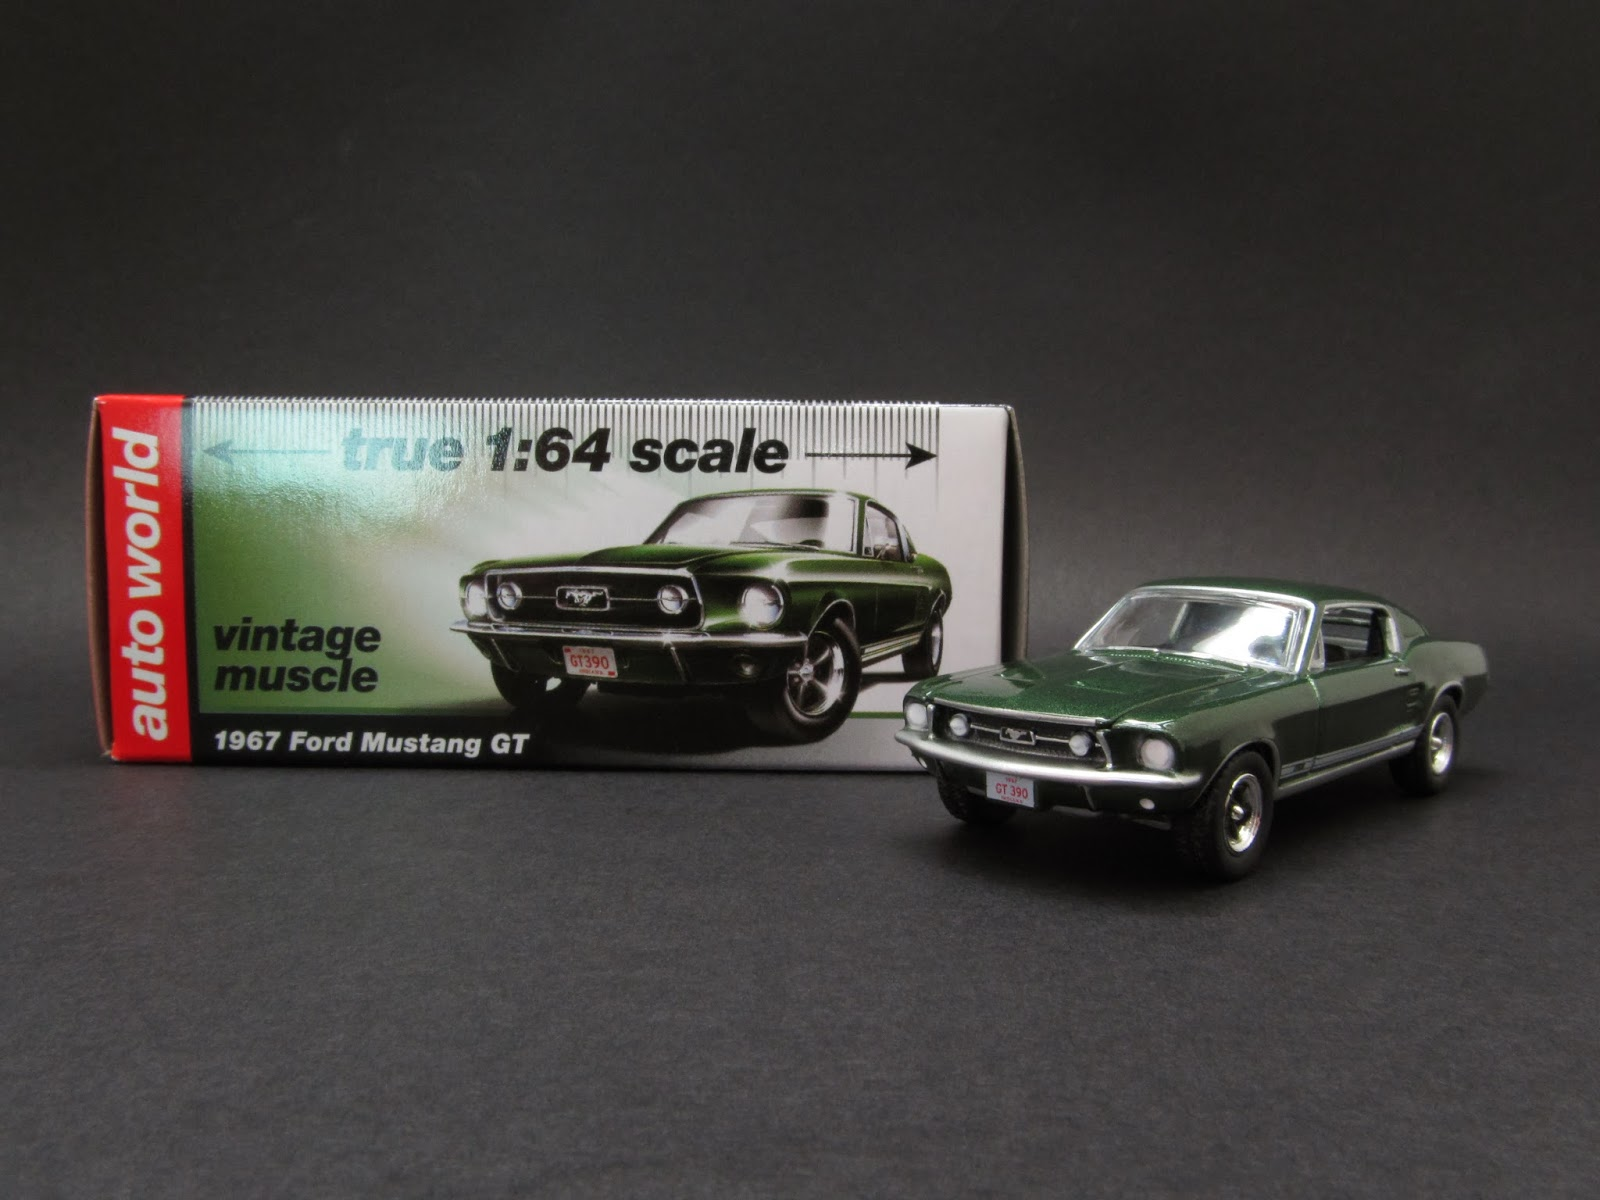 Diecast Hobbist: 1967 Ford Mustang GT